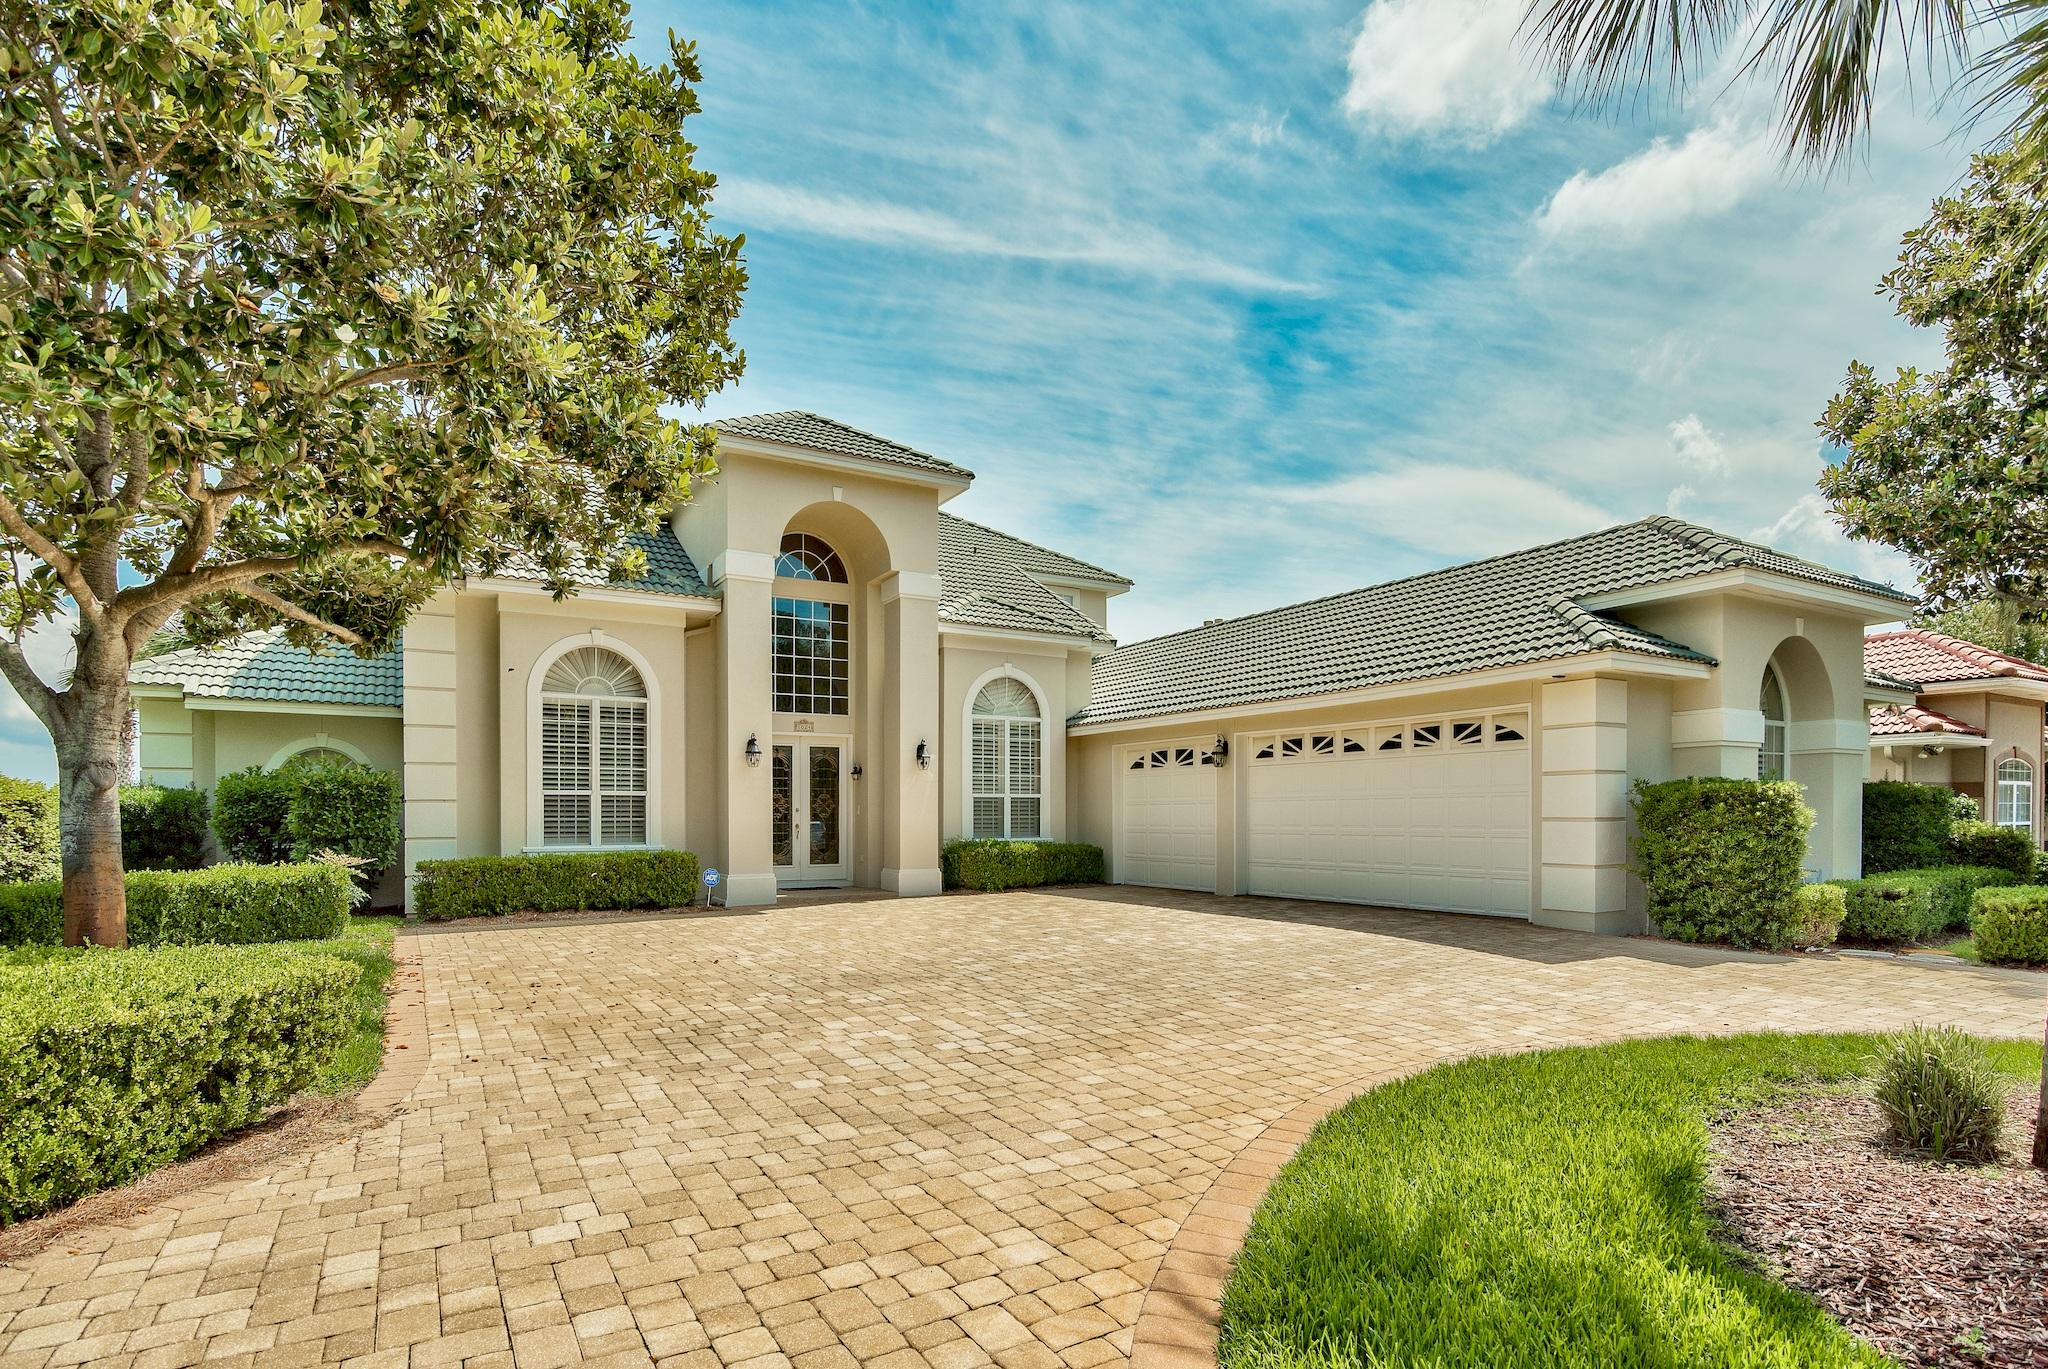 Photo of home for sale at 1024 Emerald Bay, Destin FL